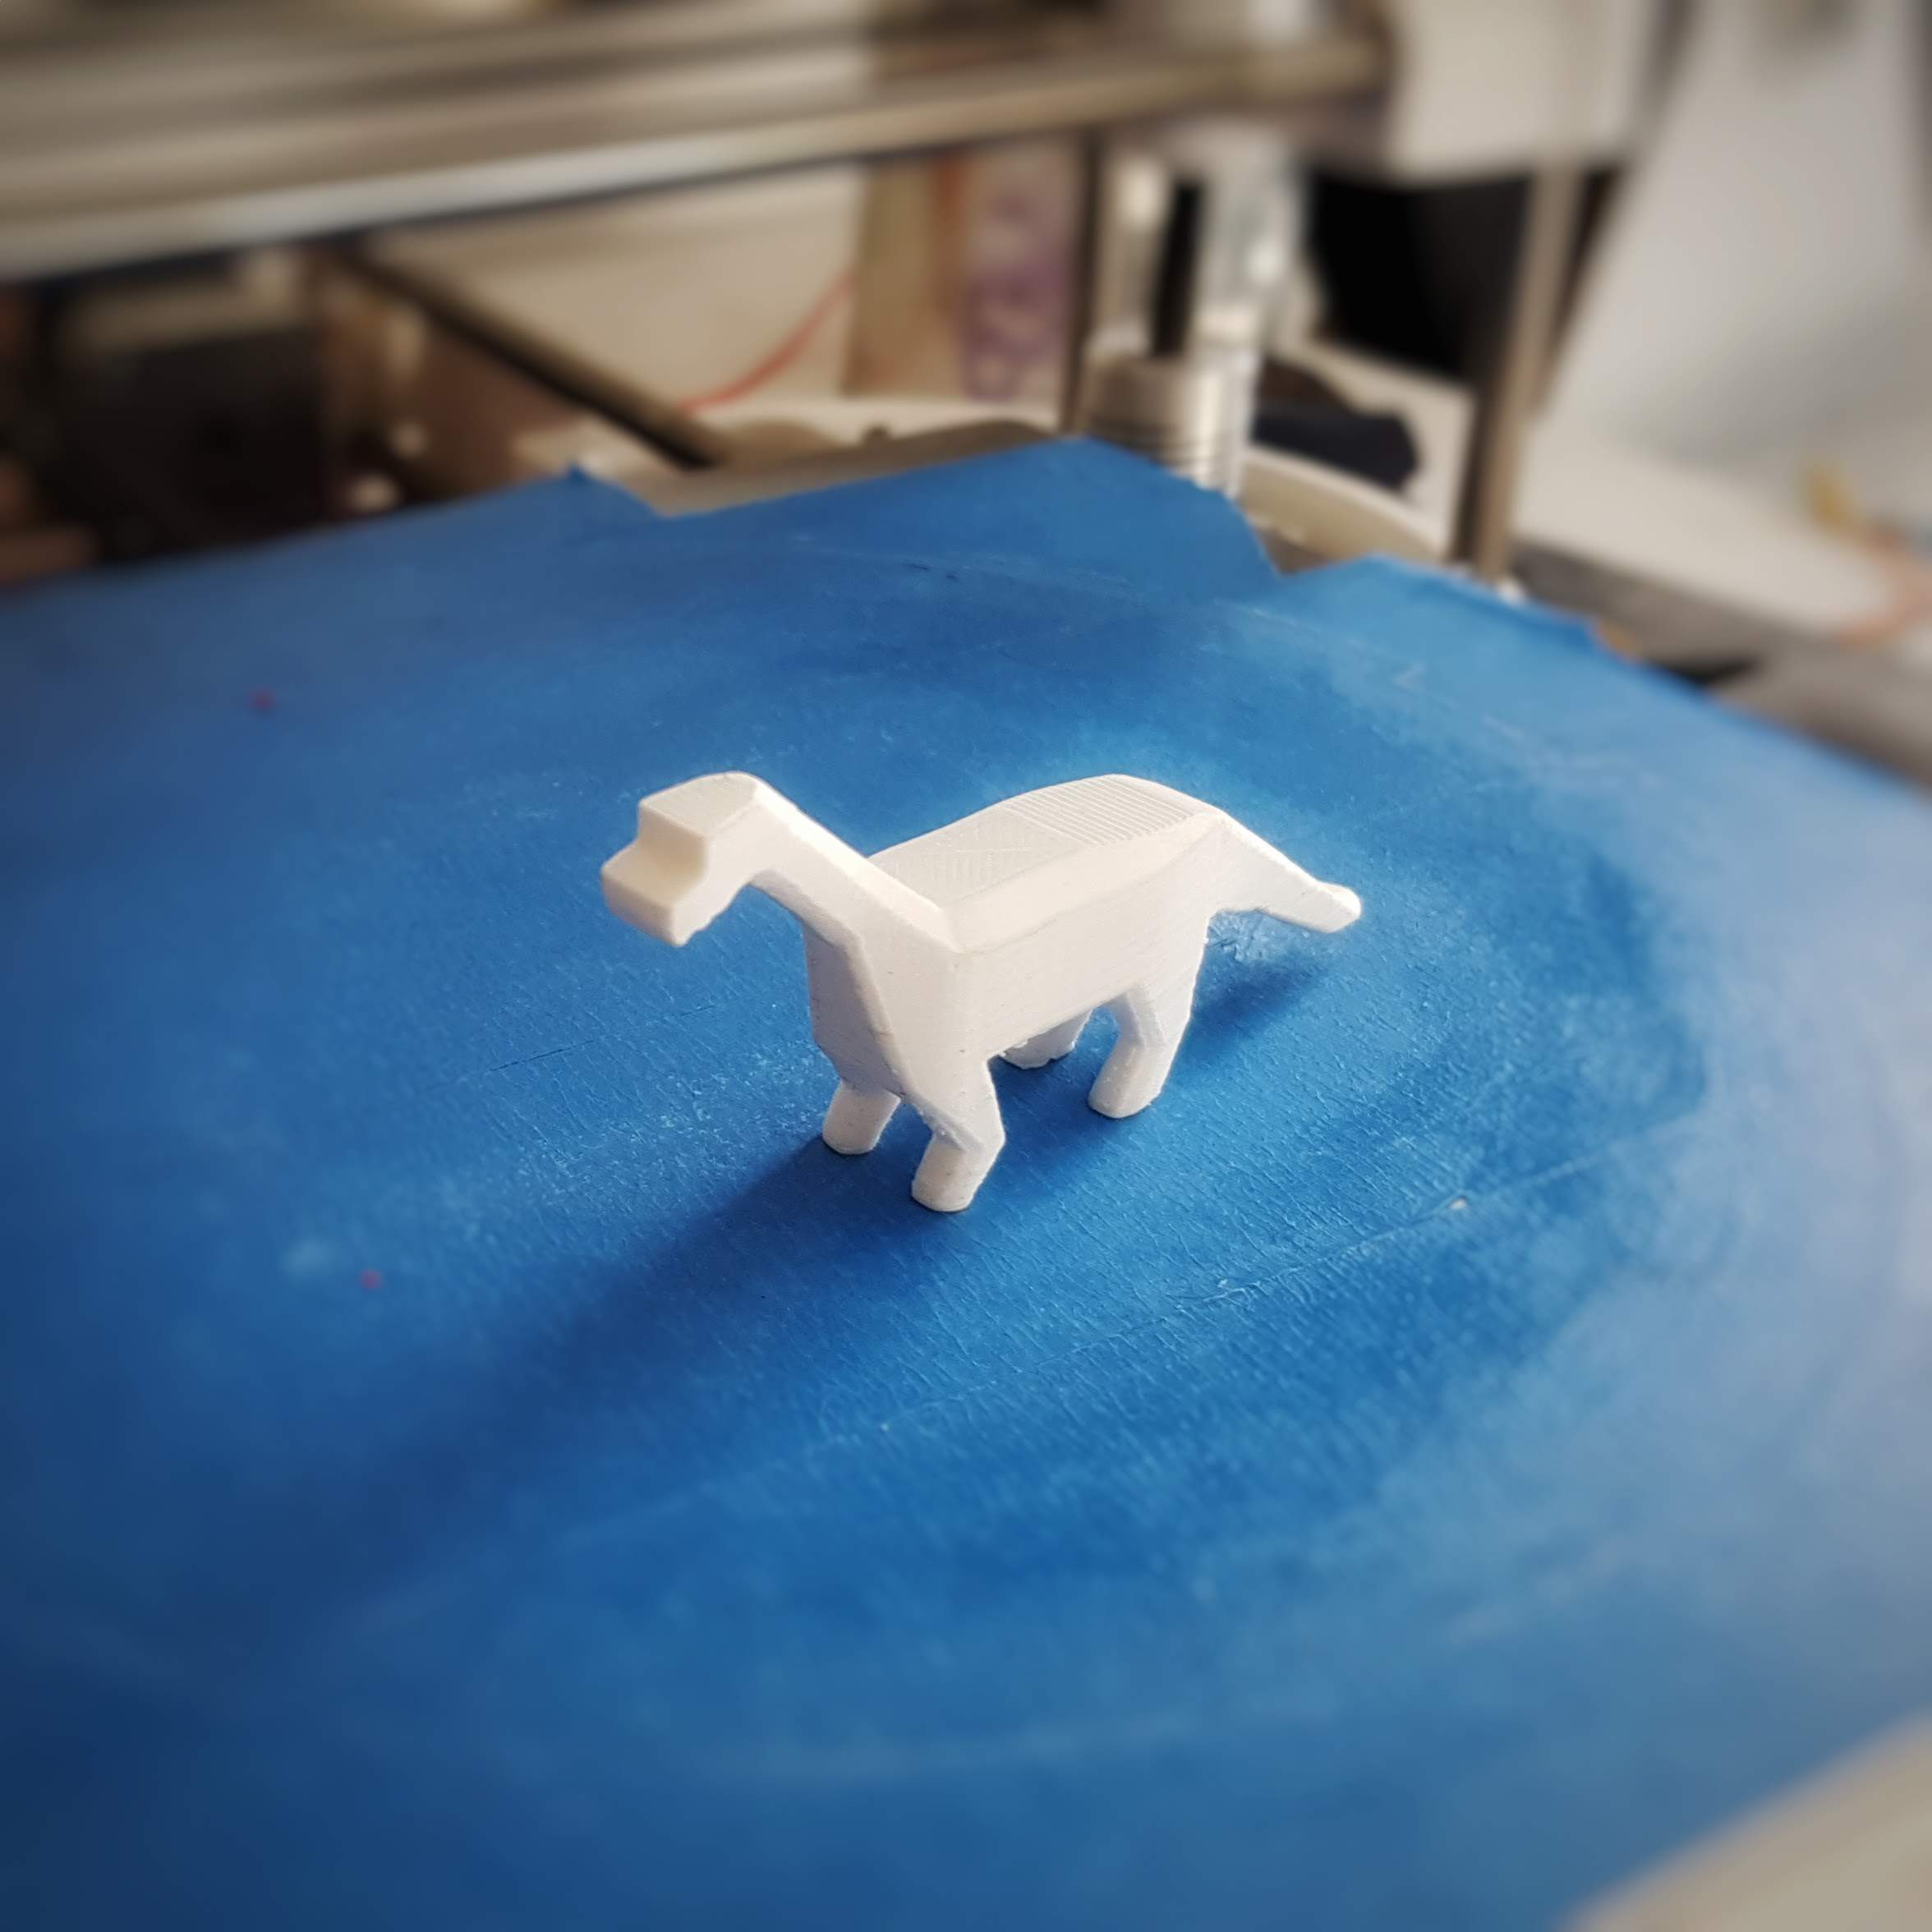 20171001_090633.jpg Download STL file Dino • Template to 3D print, Ant-103